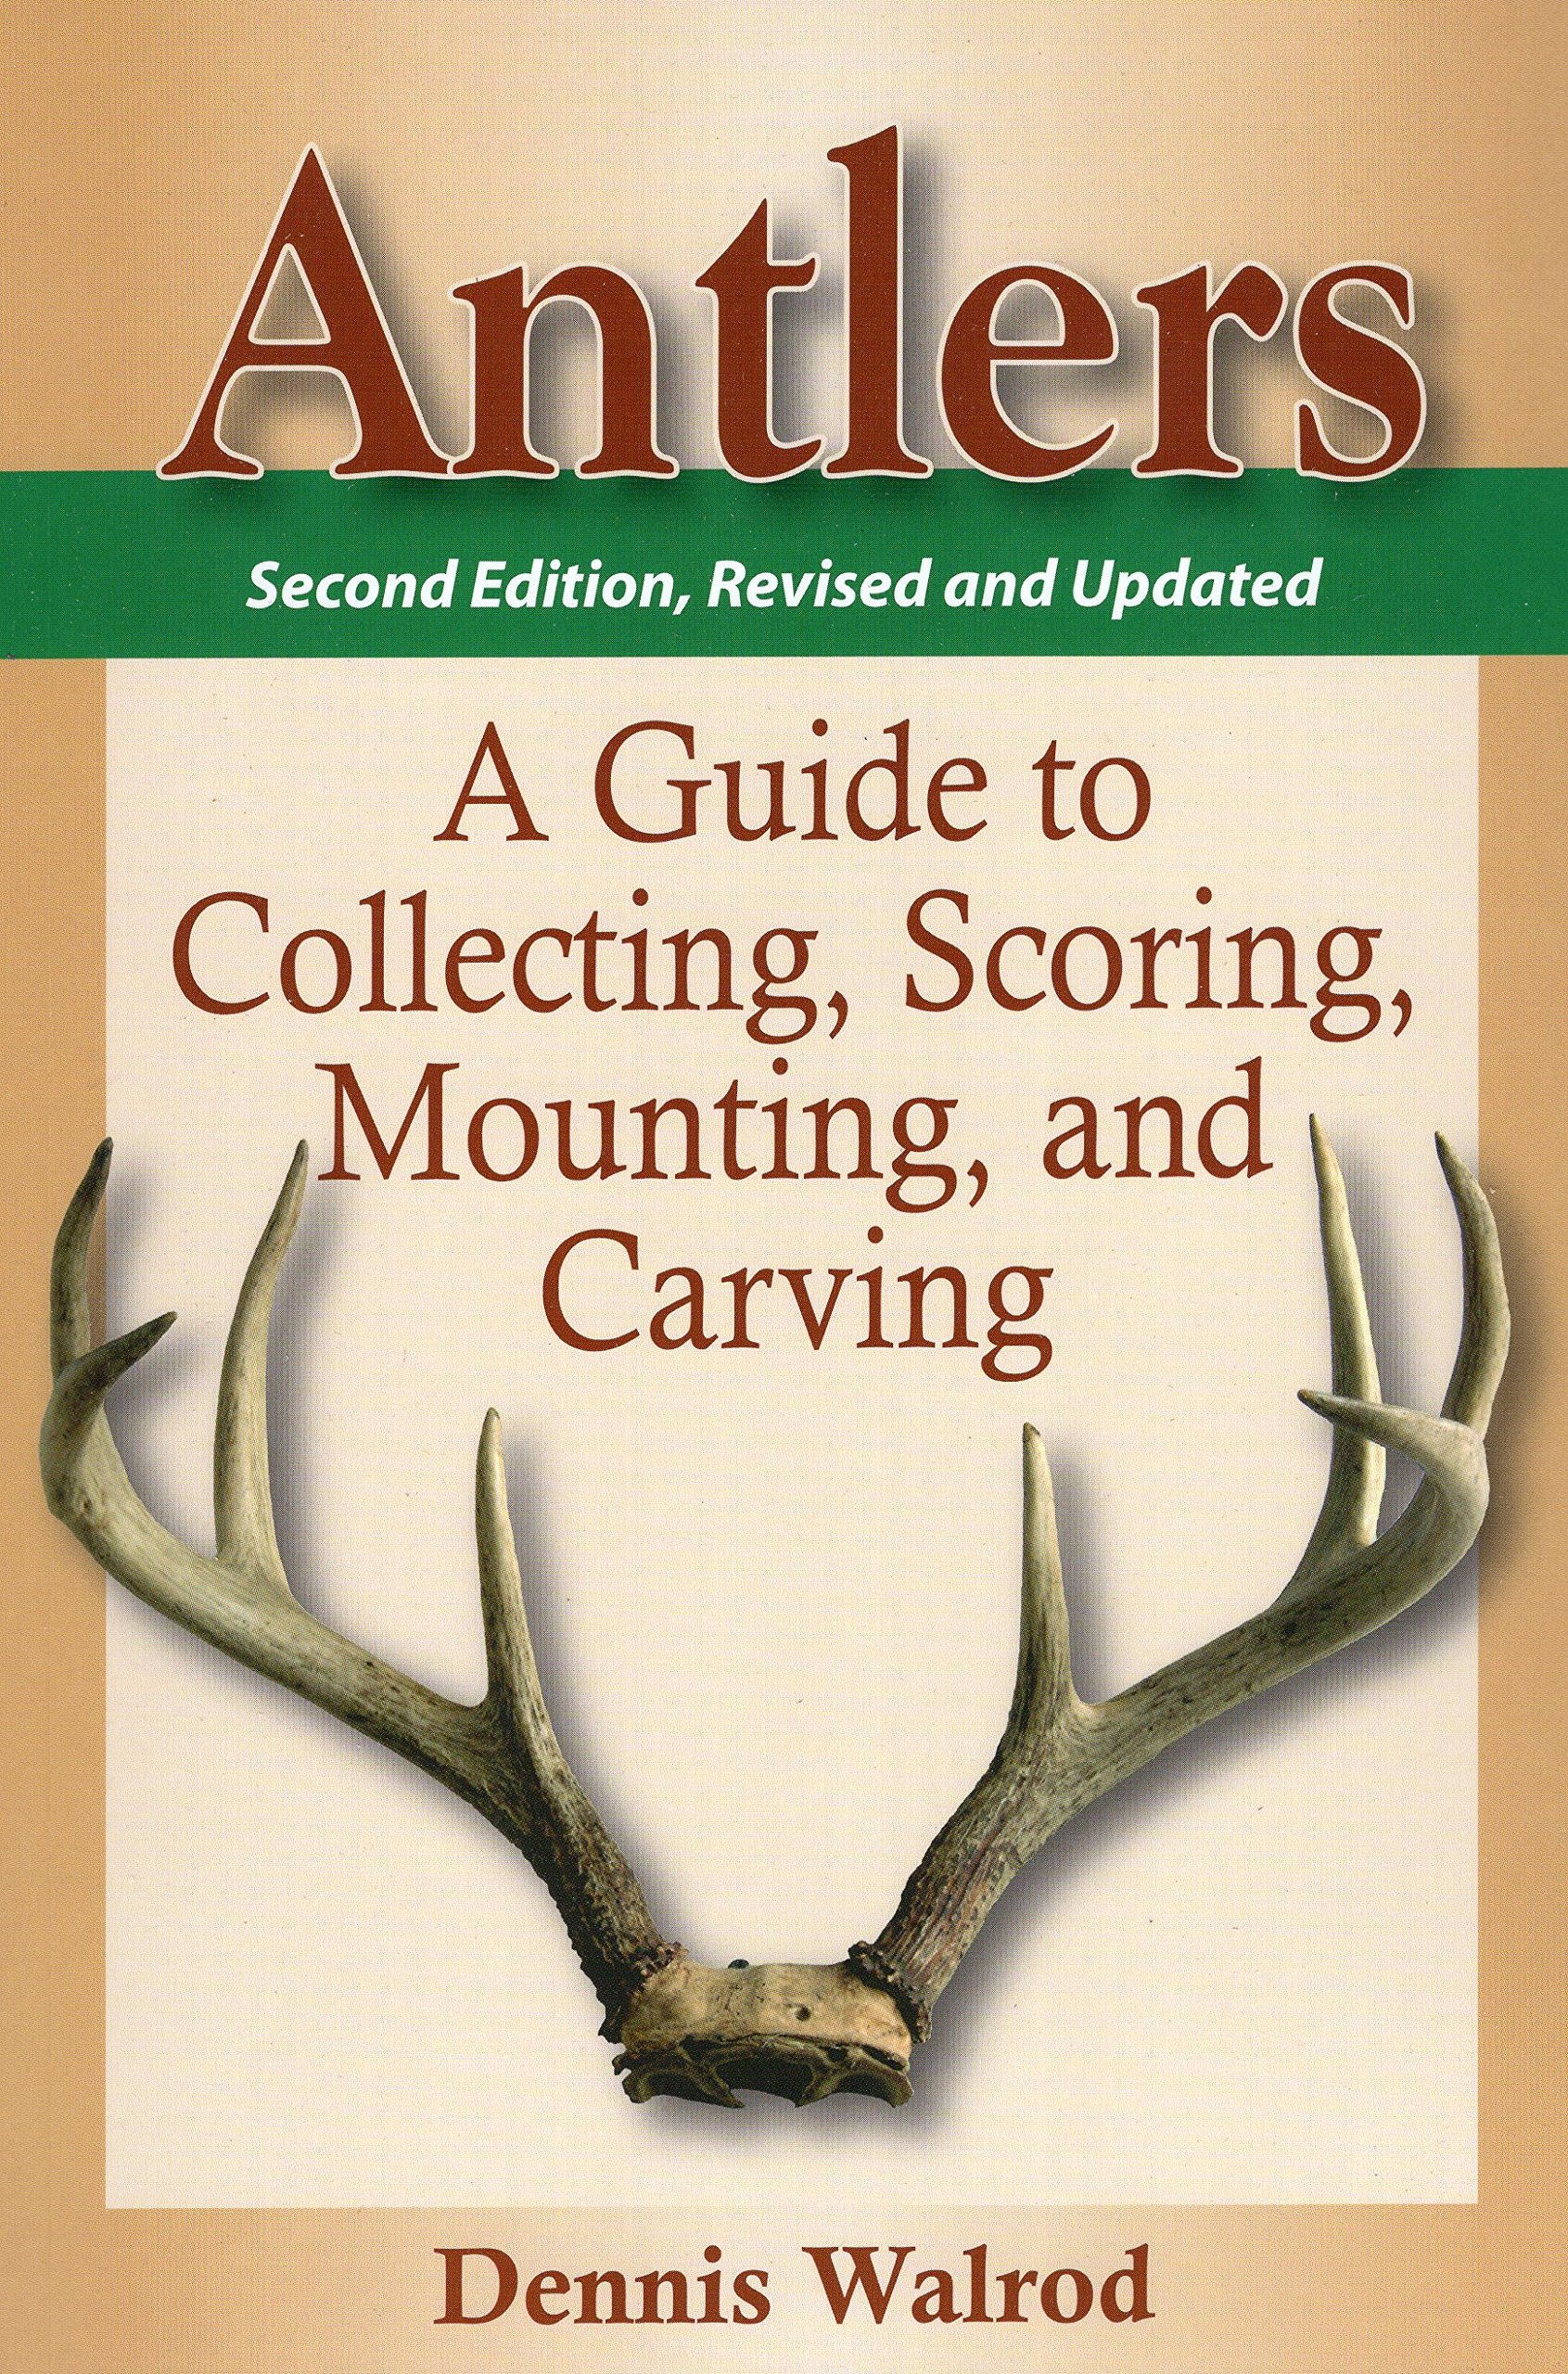 antlers-a-guide-to-collecting-scoring-mounting-and-carving-2nd-edition